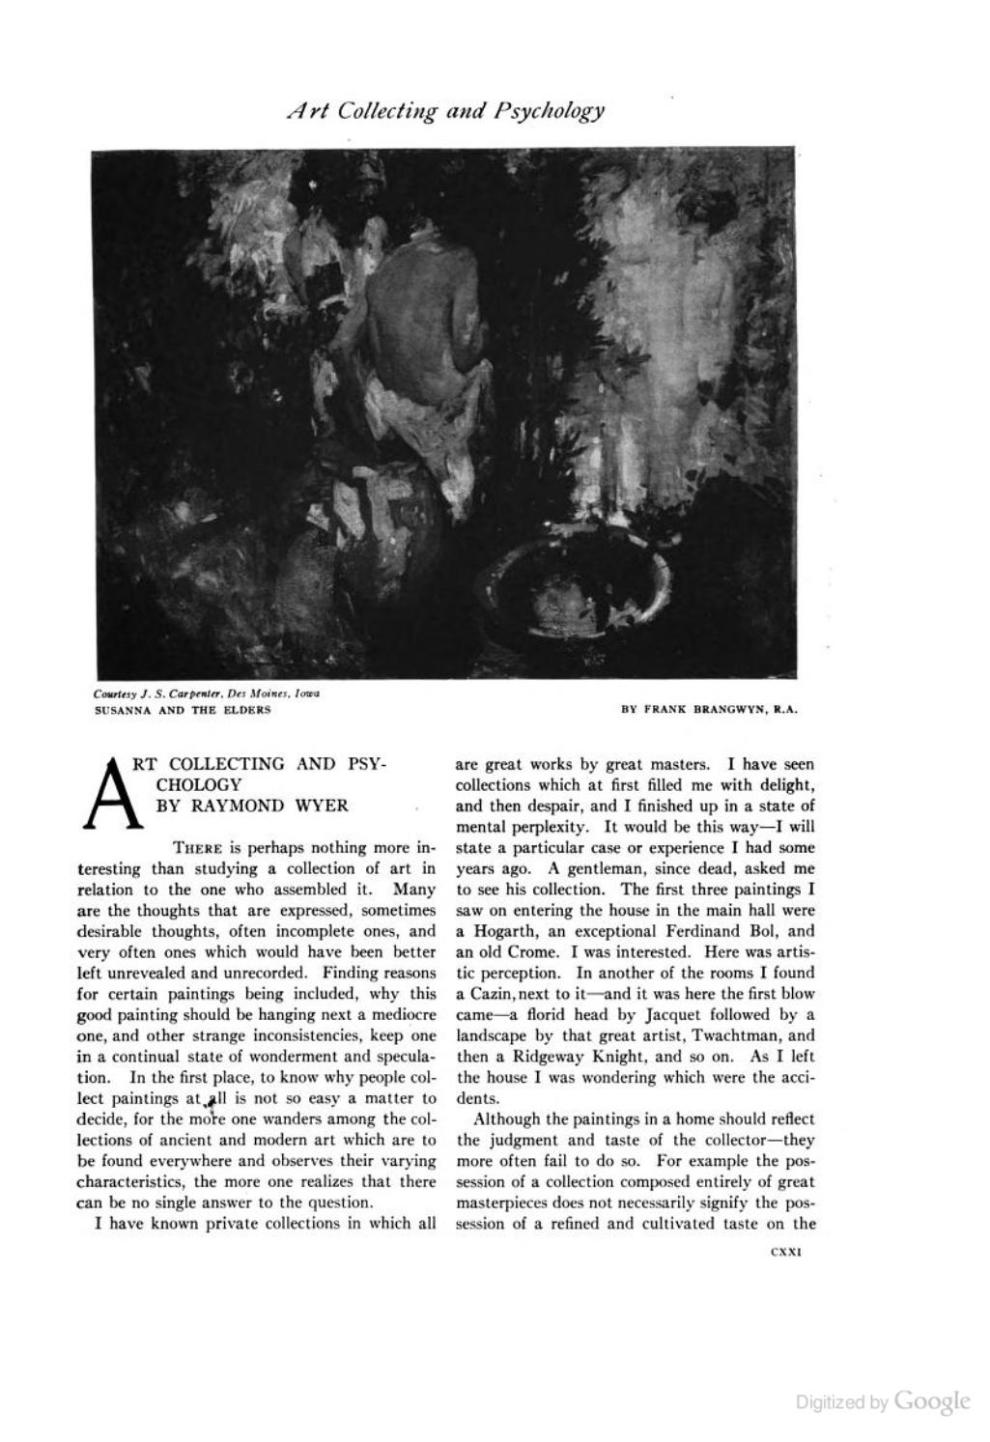 """The International Studio, New York, NY, """"Art Collecting and Psychology"""" by Raymond Wyer, Volumes 57-58, 1915, page 121-126, not illustrated"""